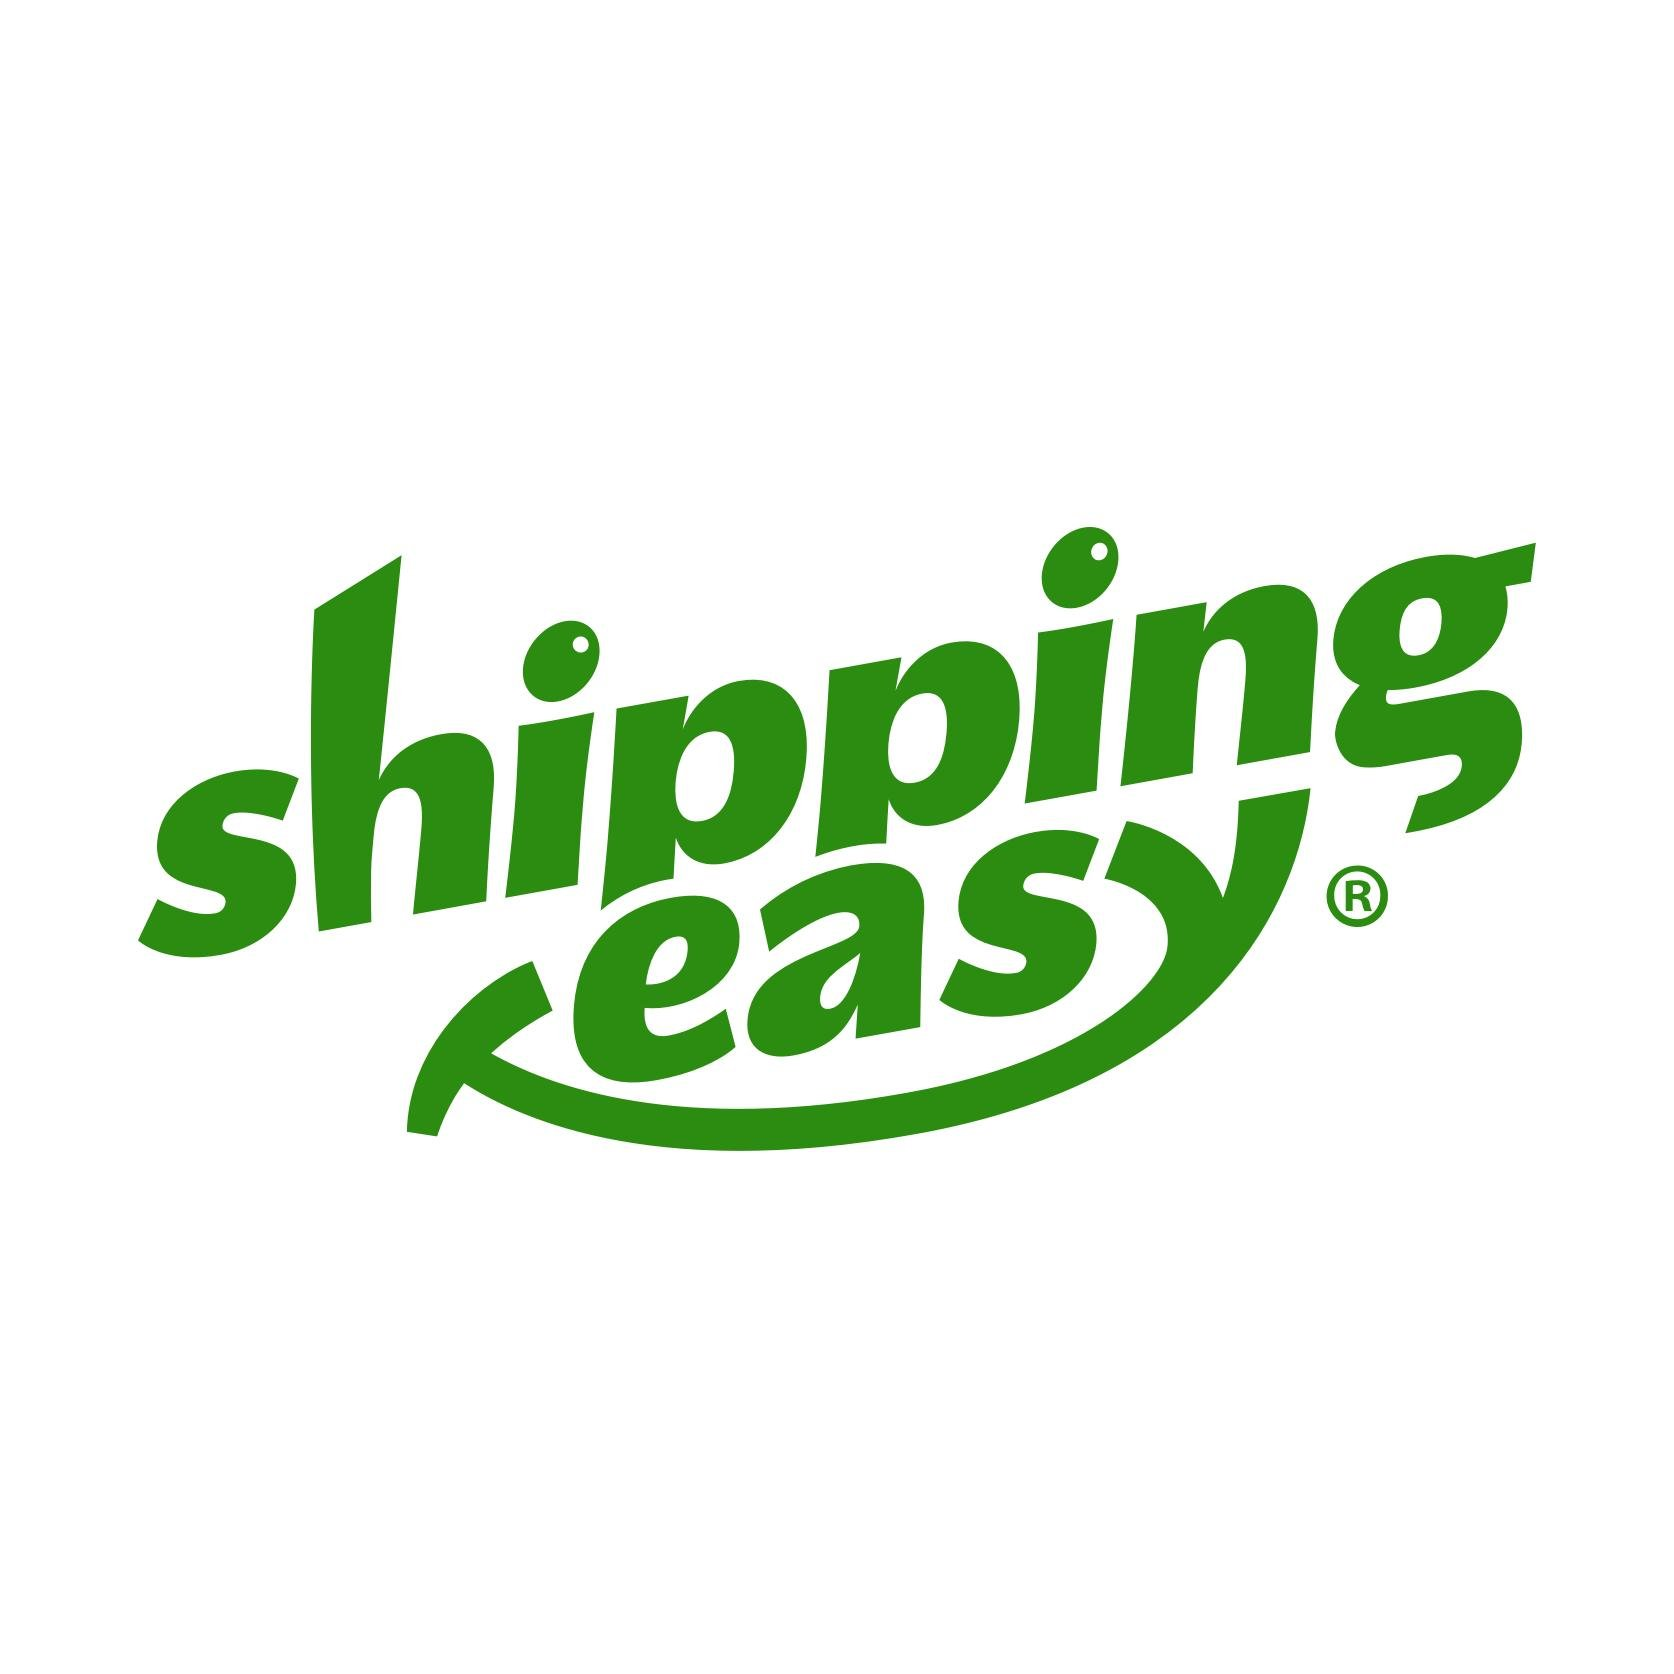 6 Best Shipping Apps for Shopify Store